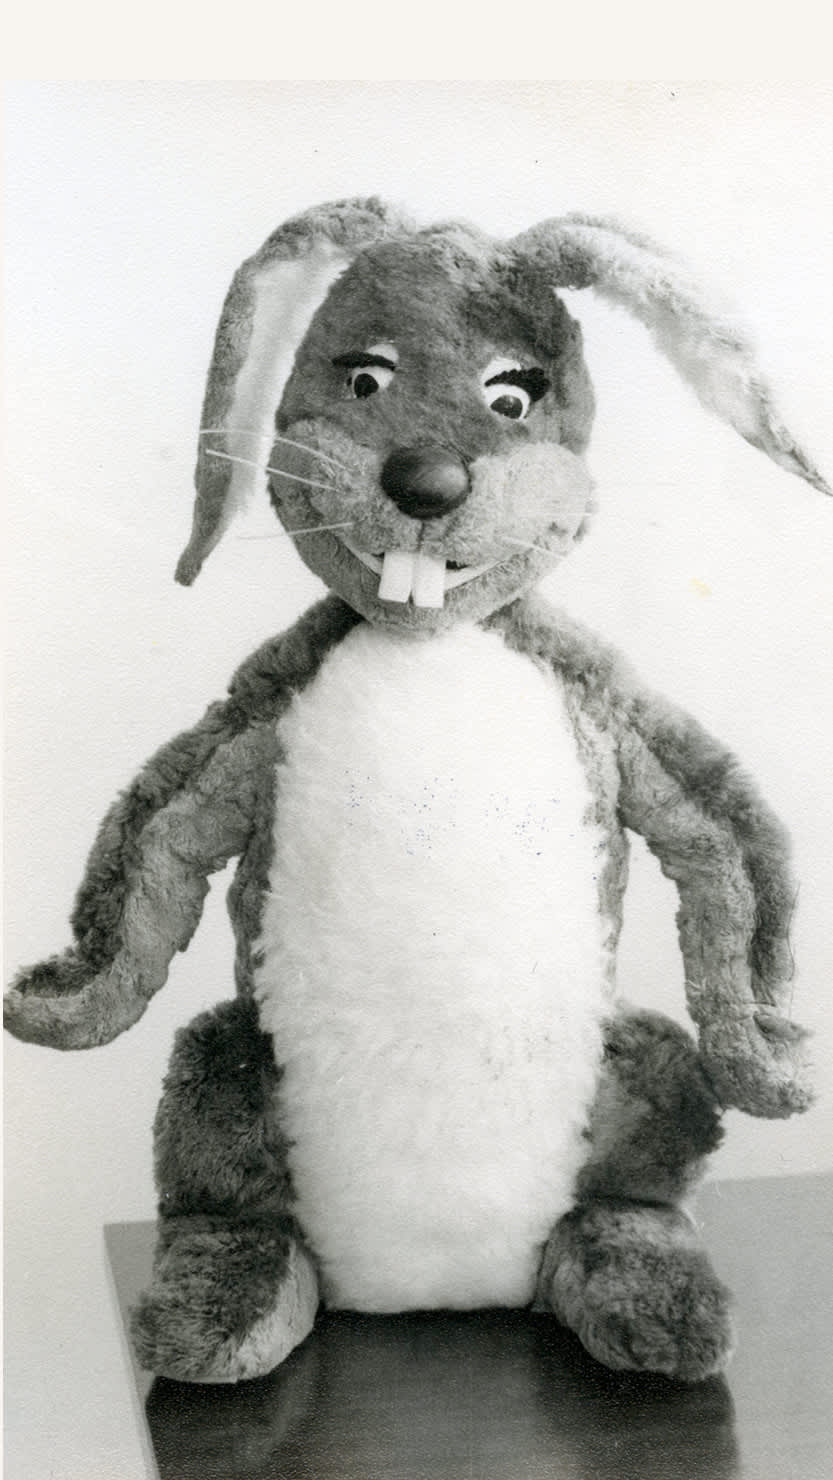 An image of what we believe to be the original Gus Honeybun puppet